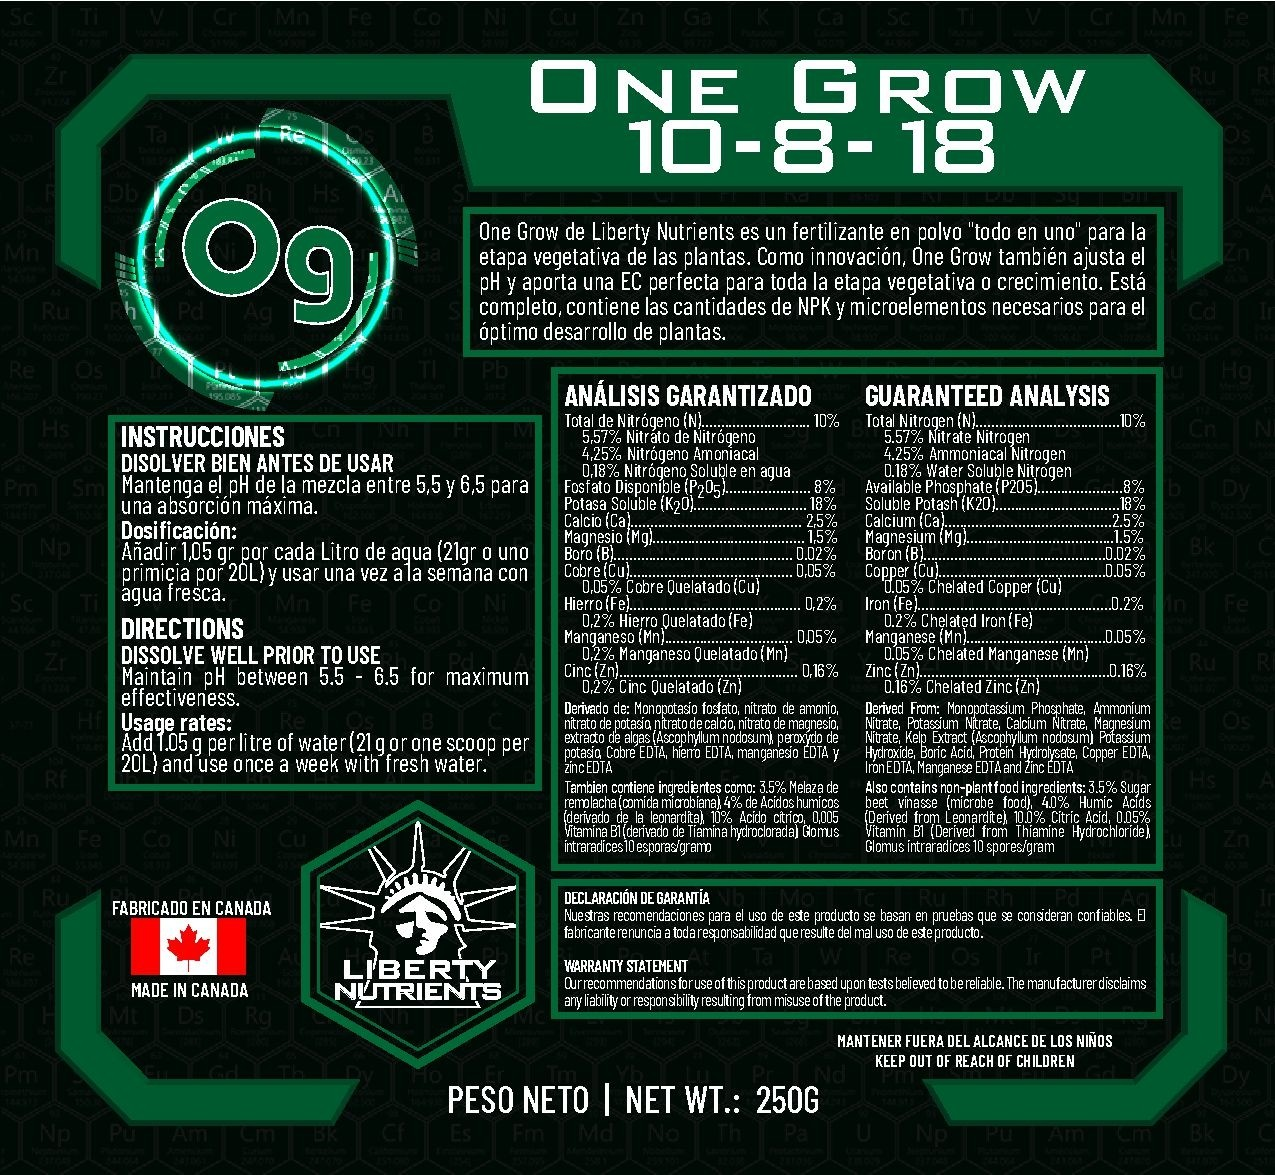 One Grow - Liberty Nutrients